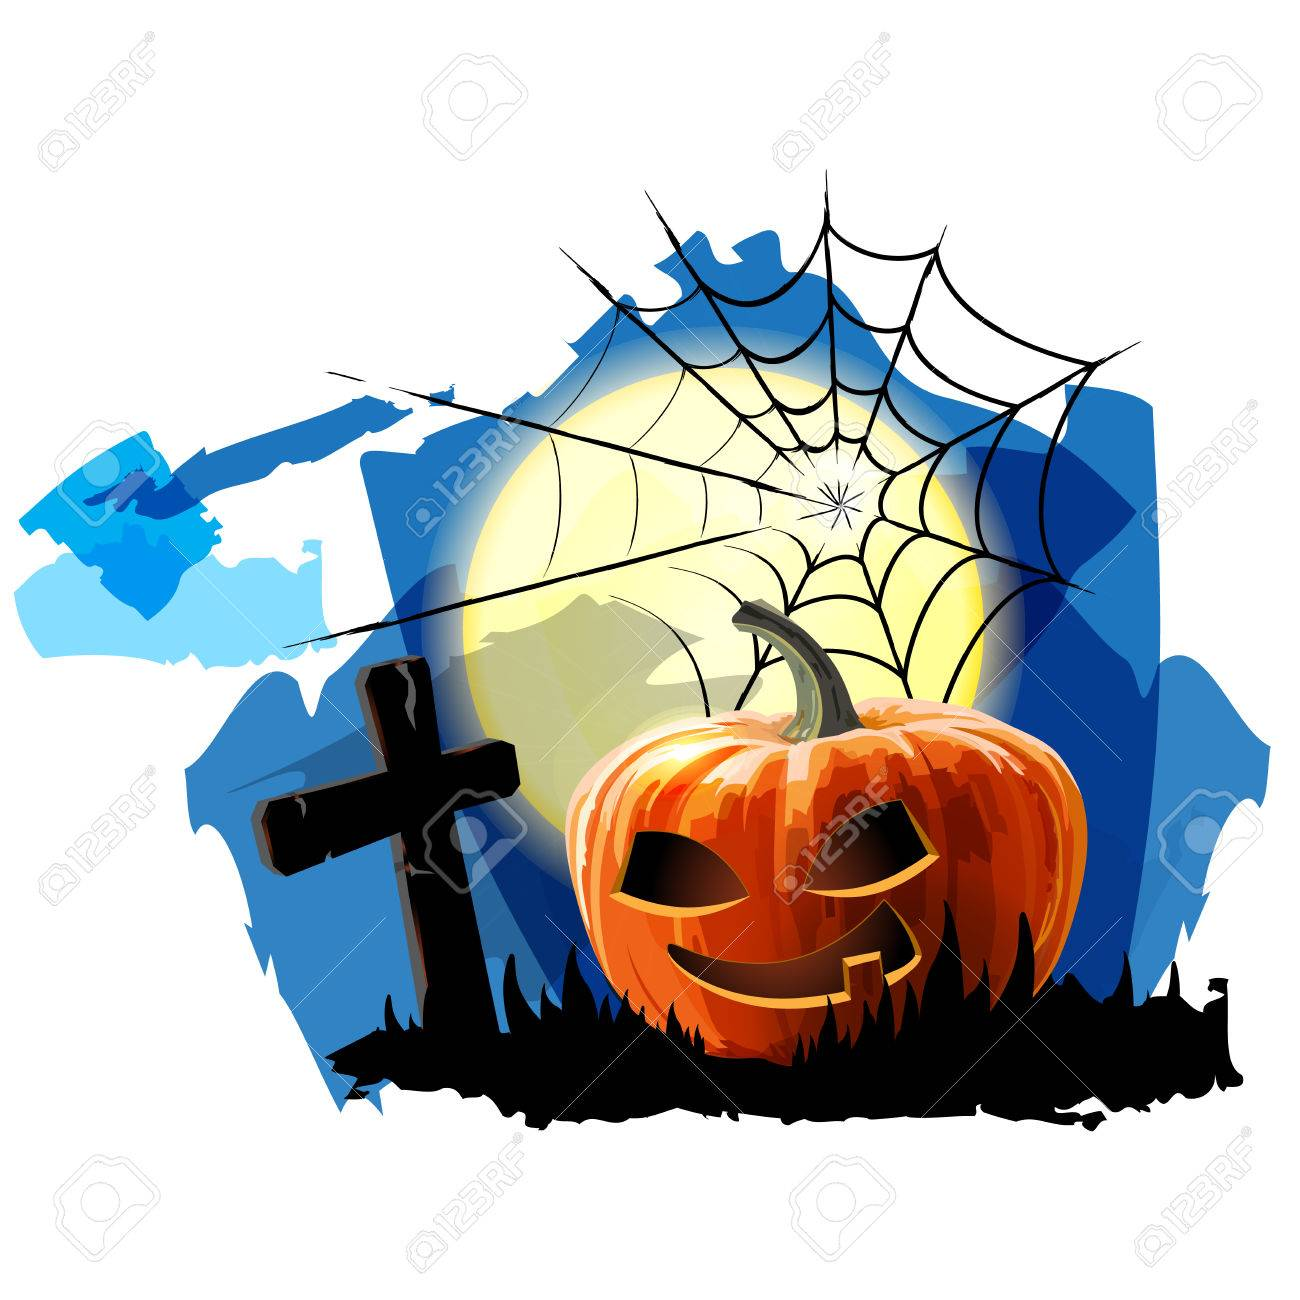 Halloween Party Background with Pumpkin Stock Vector - 23119718